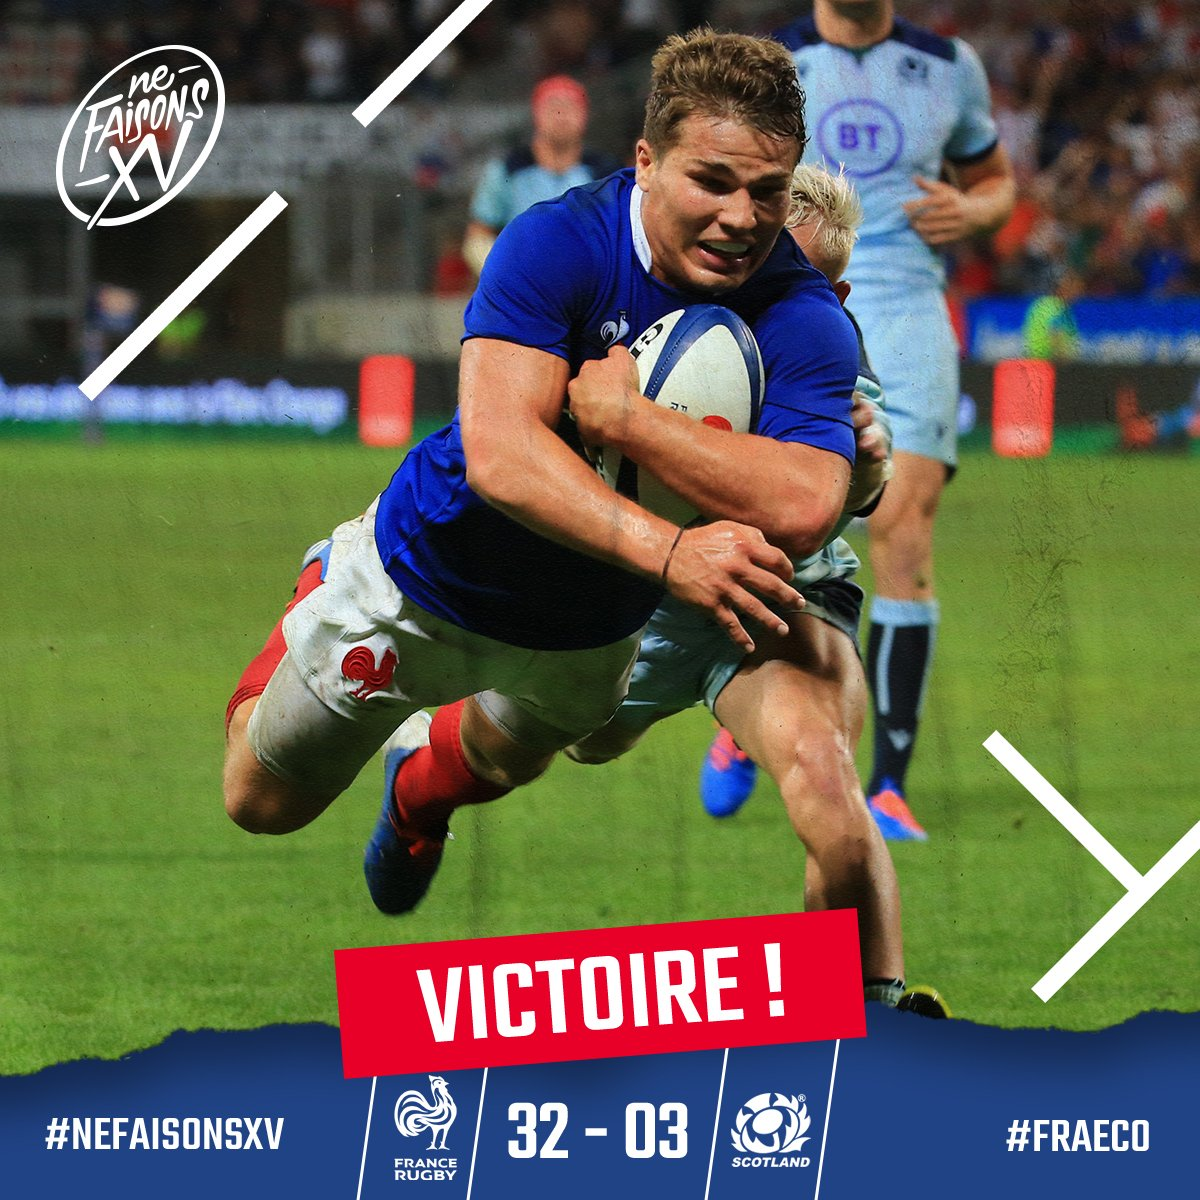 @FranceRugby's photo on #XVdeFrance